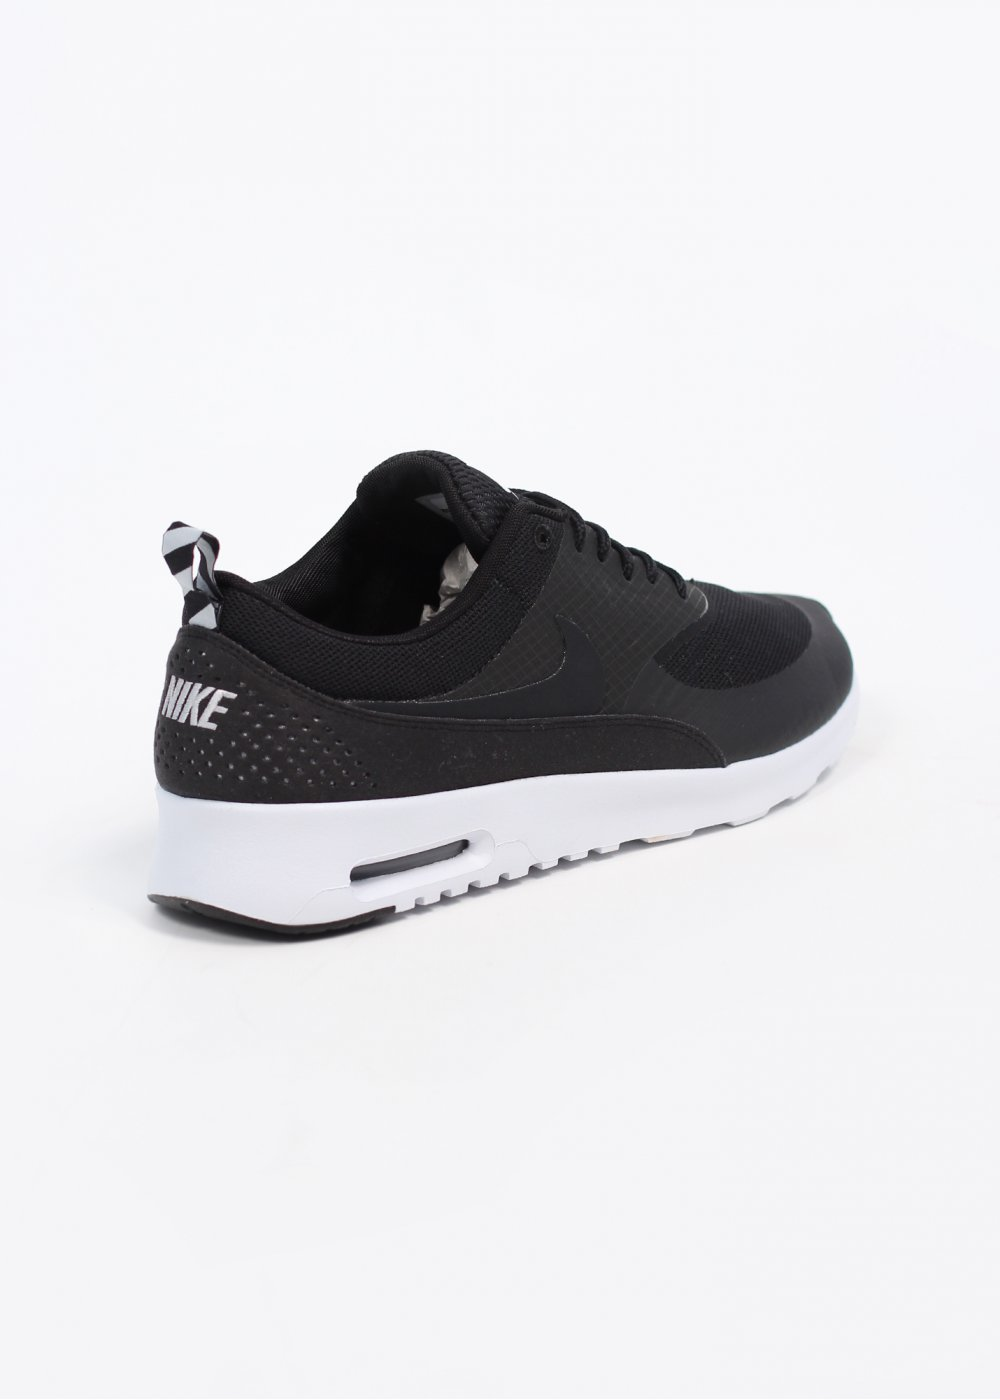 nike air max thea mens black